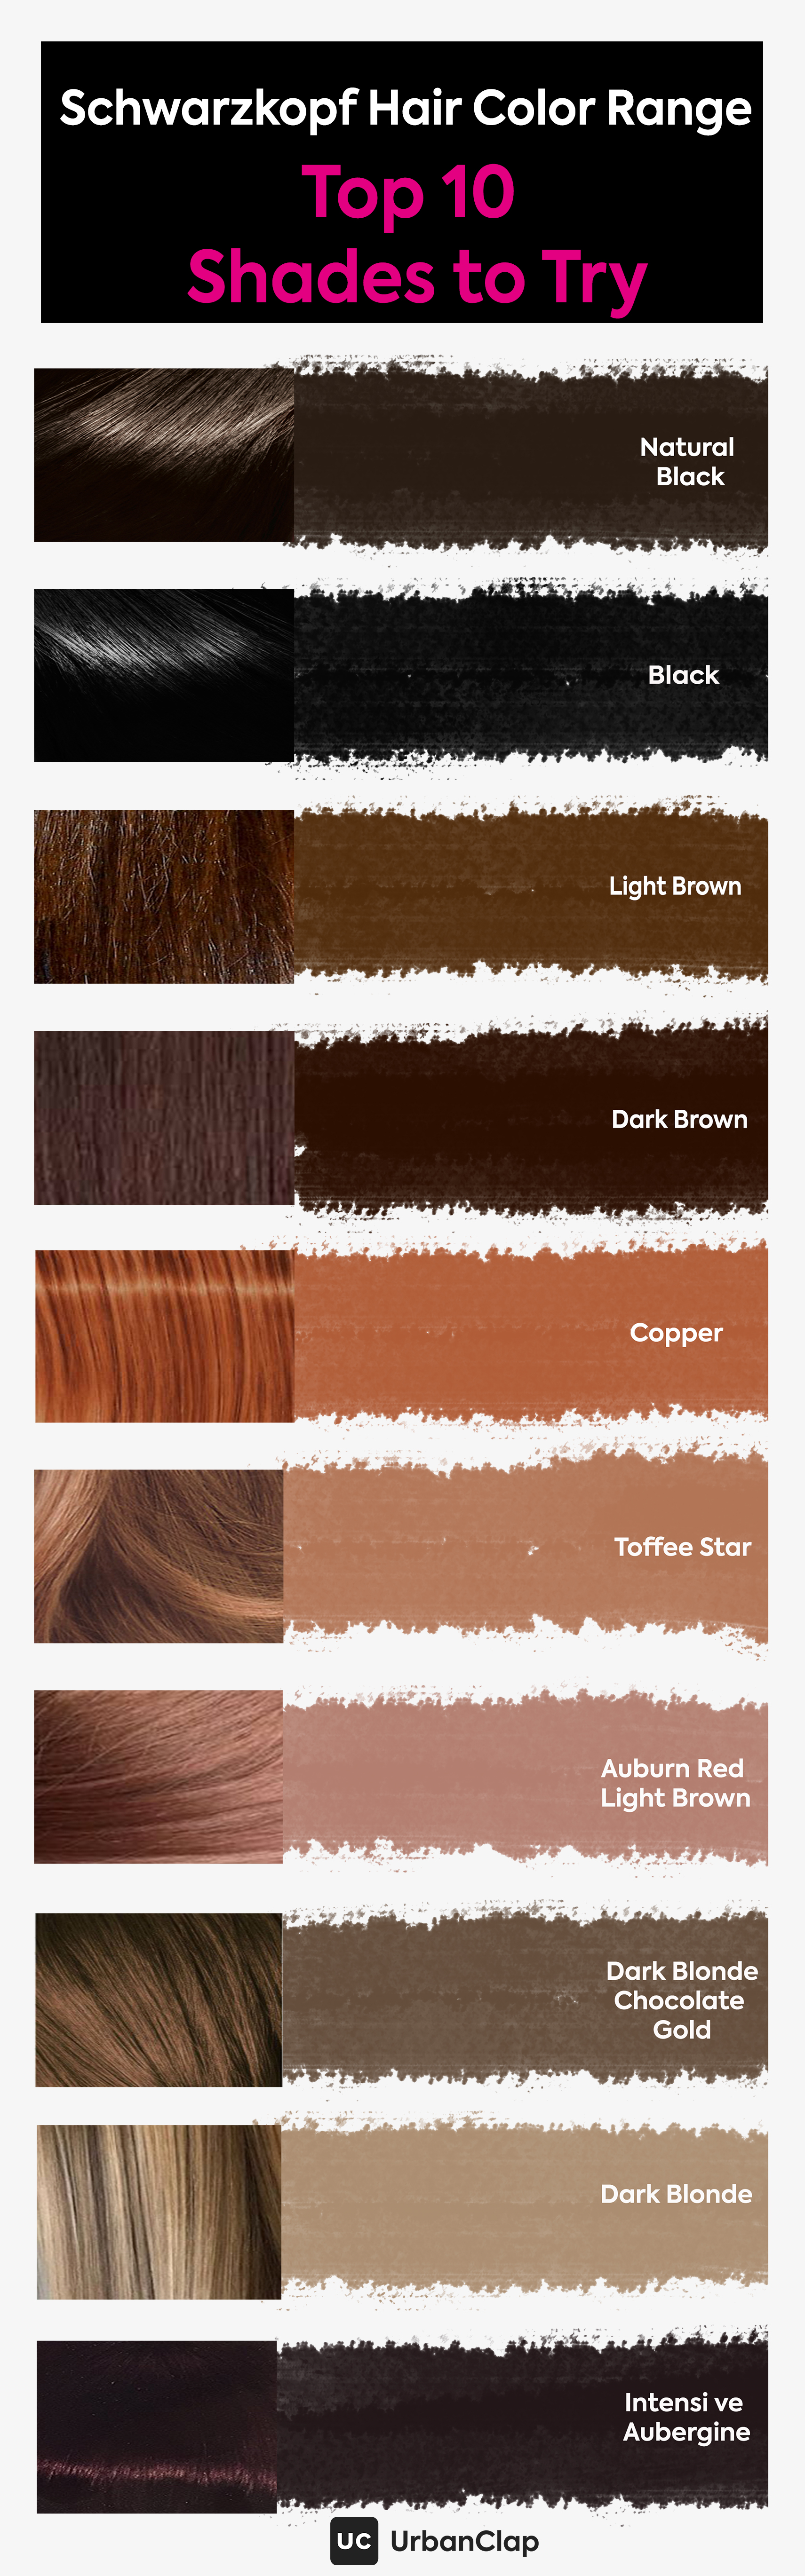 Schwarzkopf Hair Color Range Top 10 Shades For Indian Skin Tones The Urban Guide